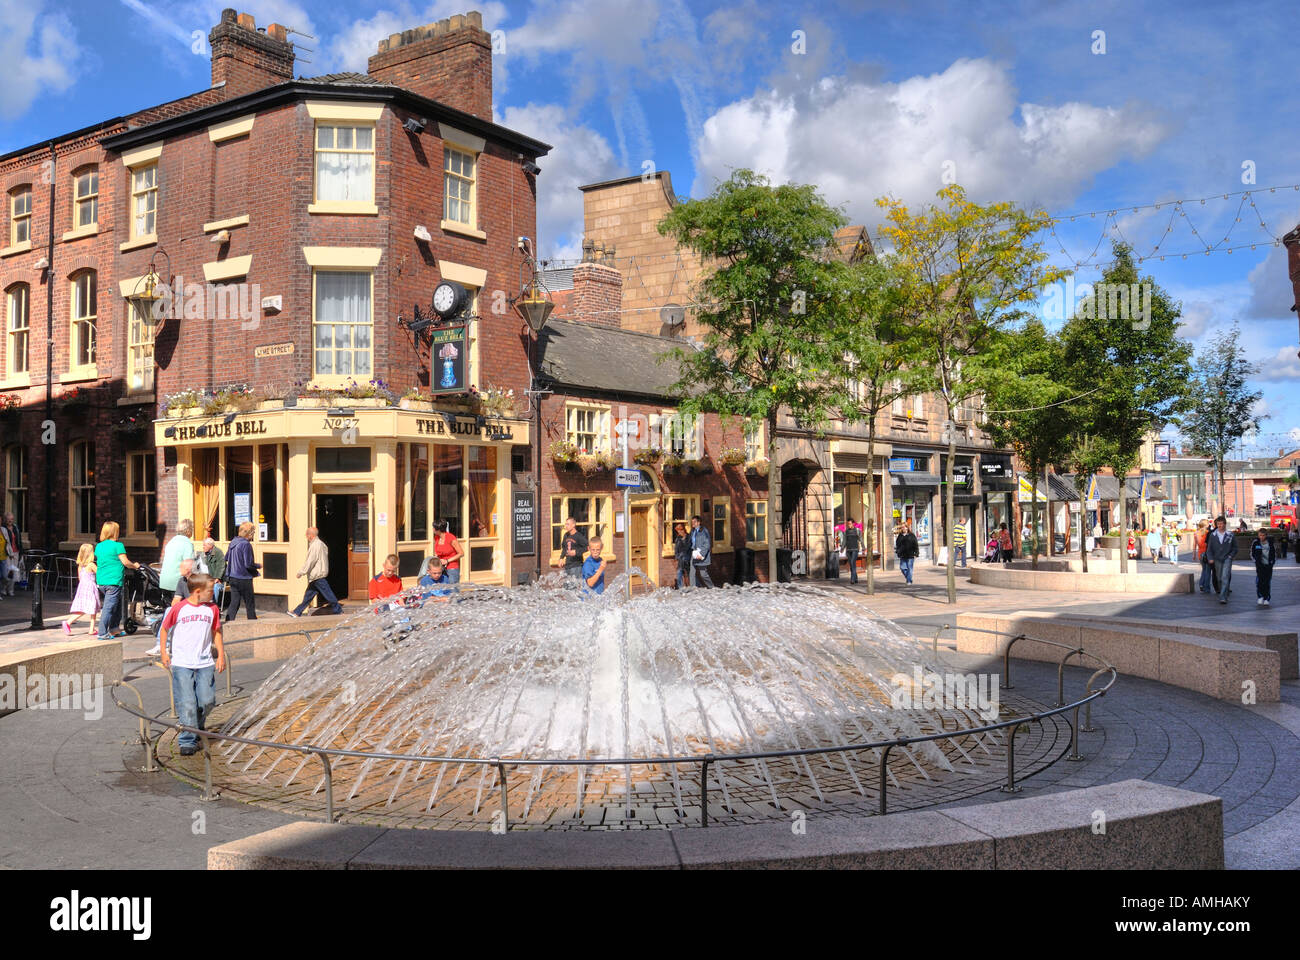 Historic Bluebell Inn, Horsemarket Street in Warrington town centre with fountain in forground - Stock Image